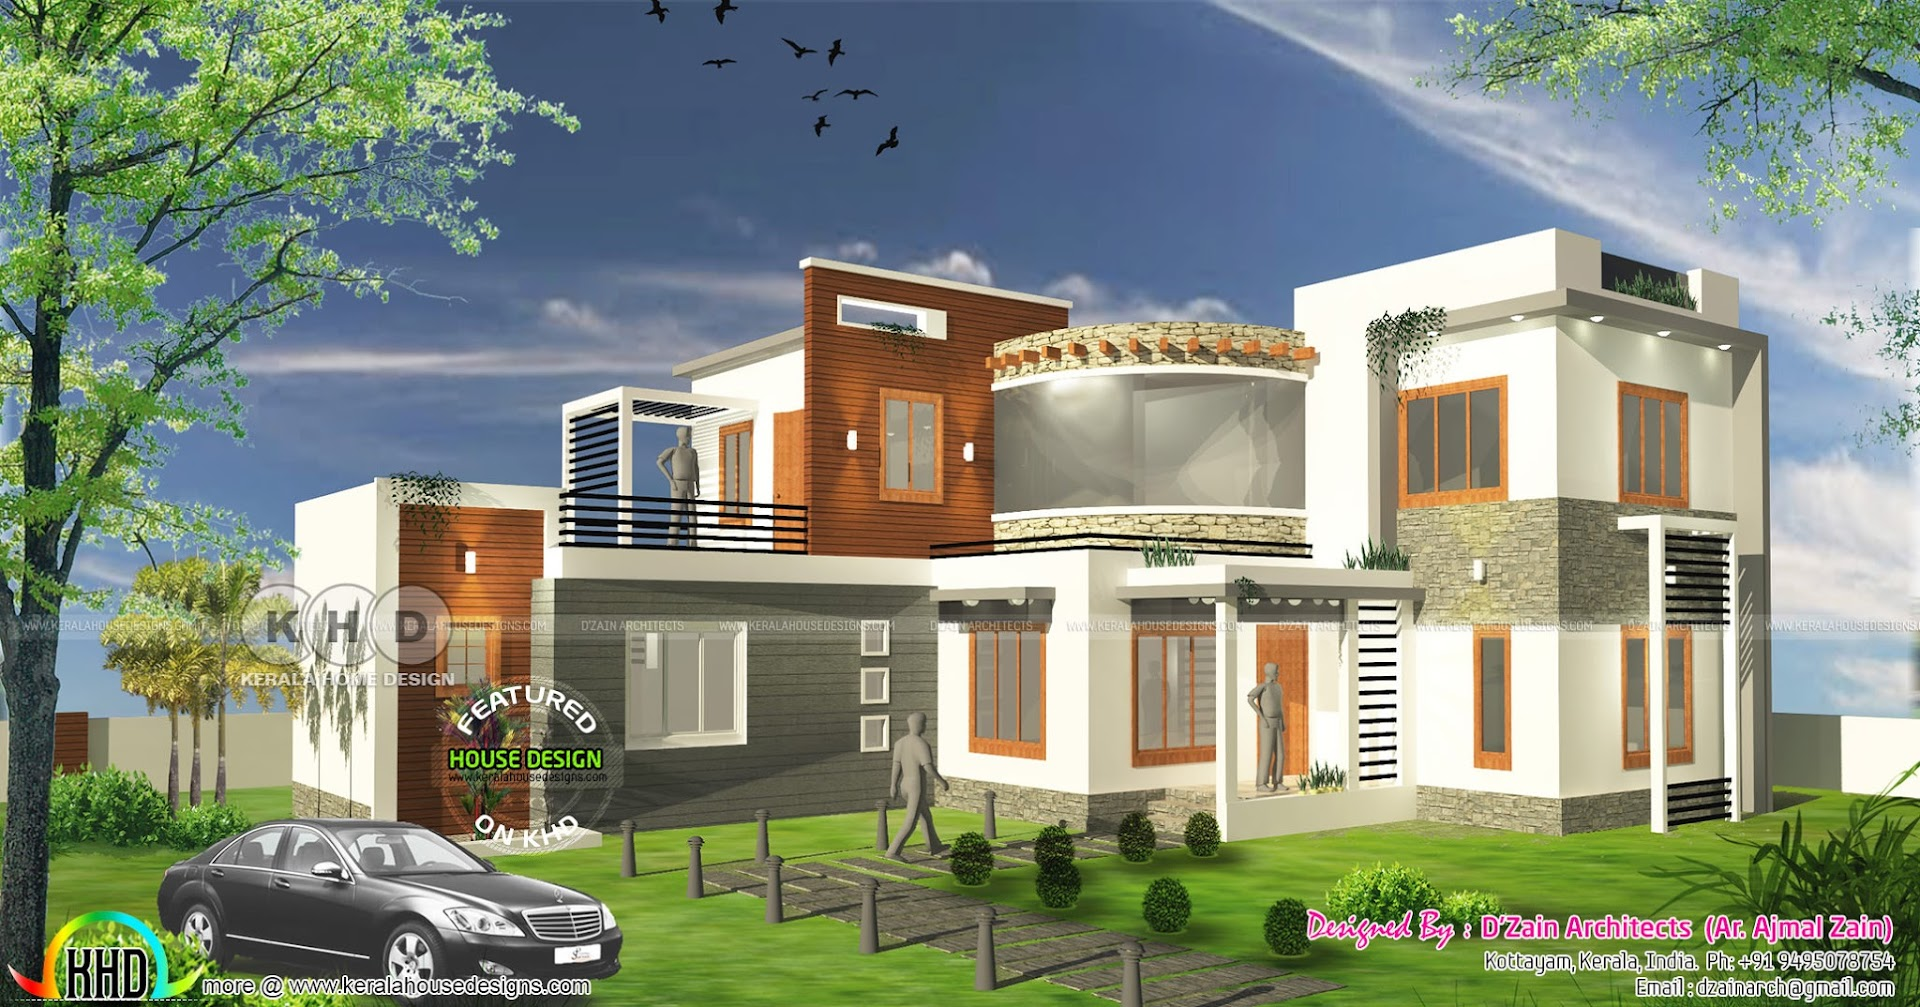 Other Designs By Du0027Zain Architects For More Information Of This House,  Contact. Designed BY : Du0027Zain Architects (Ar. Ajmal Zain)(House Design In  Kottayam)